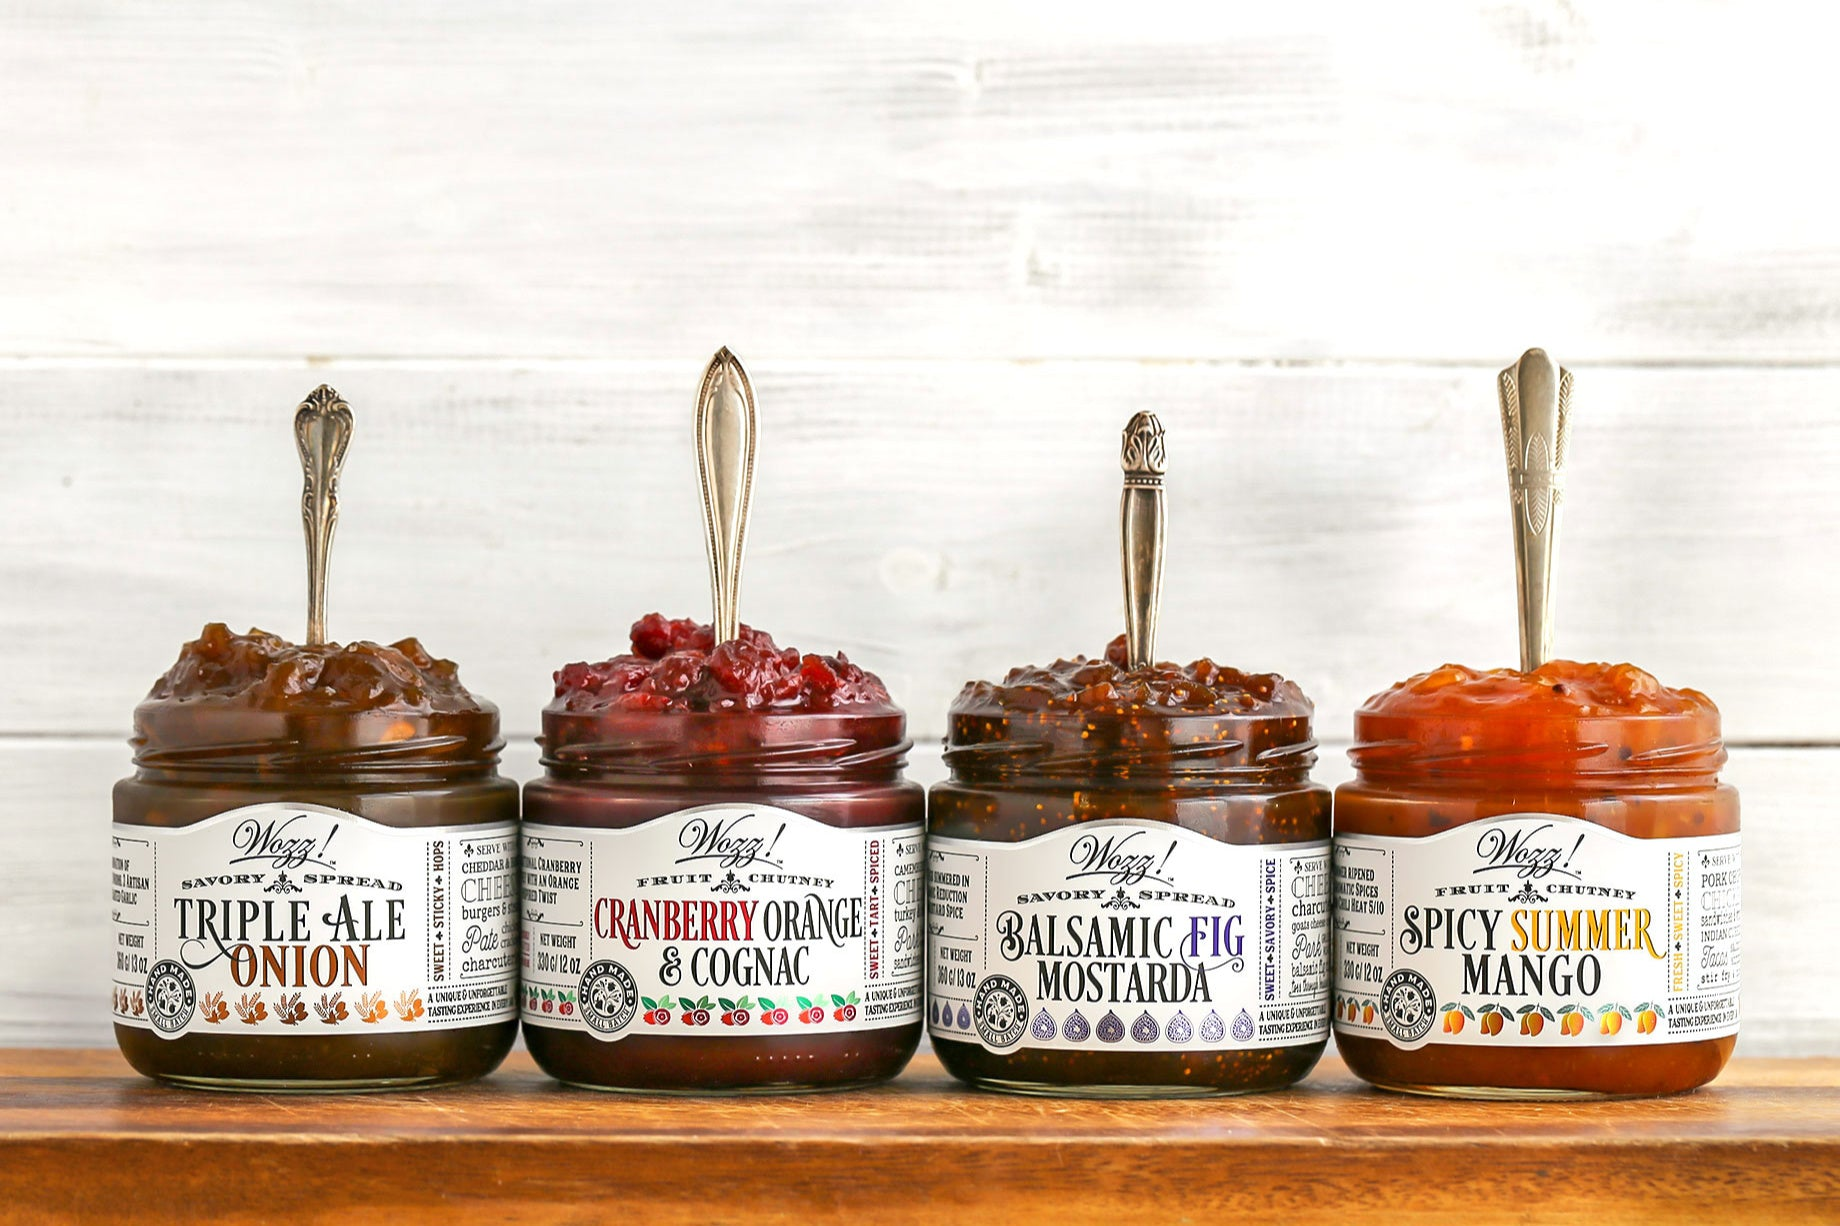 Gourmet Condiments | Sauces | Spreads | Wozz! Kitchen Creations